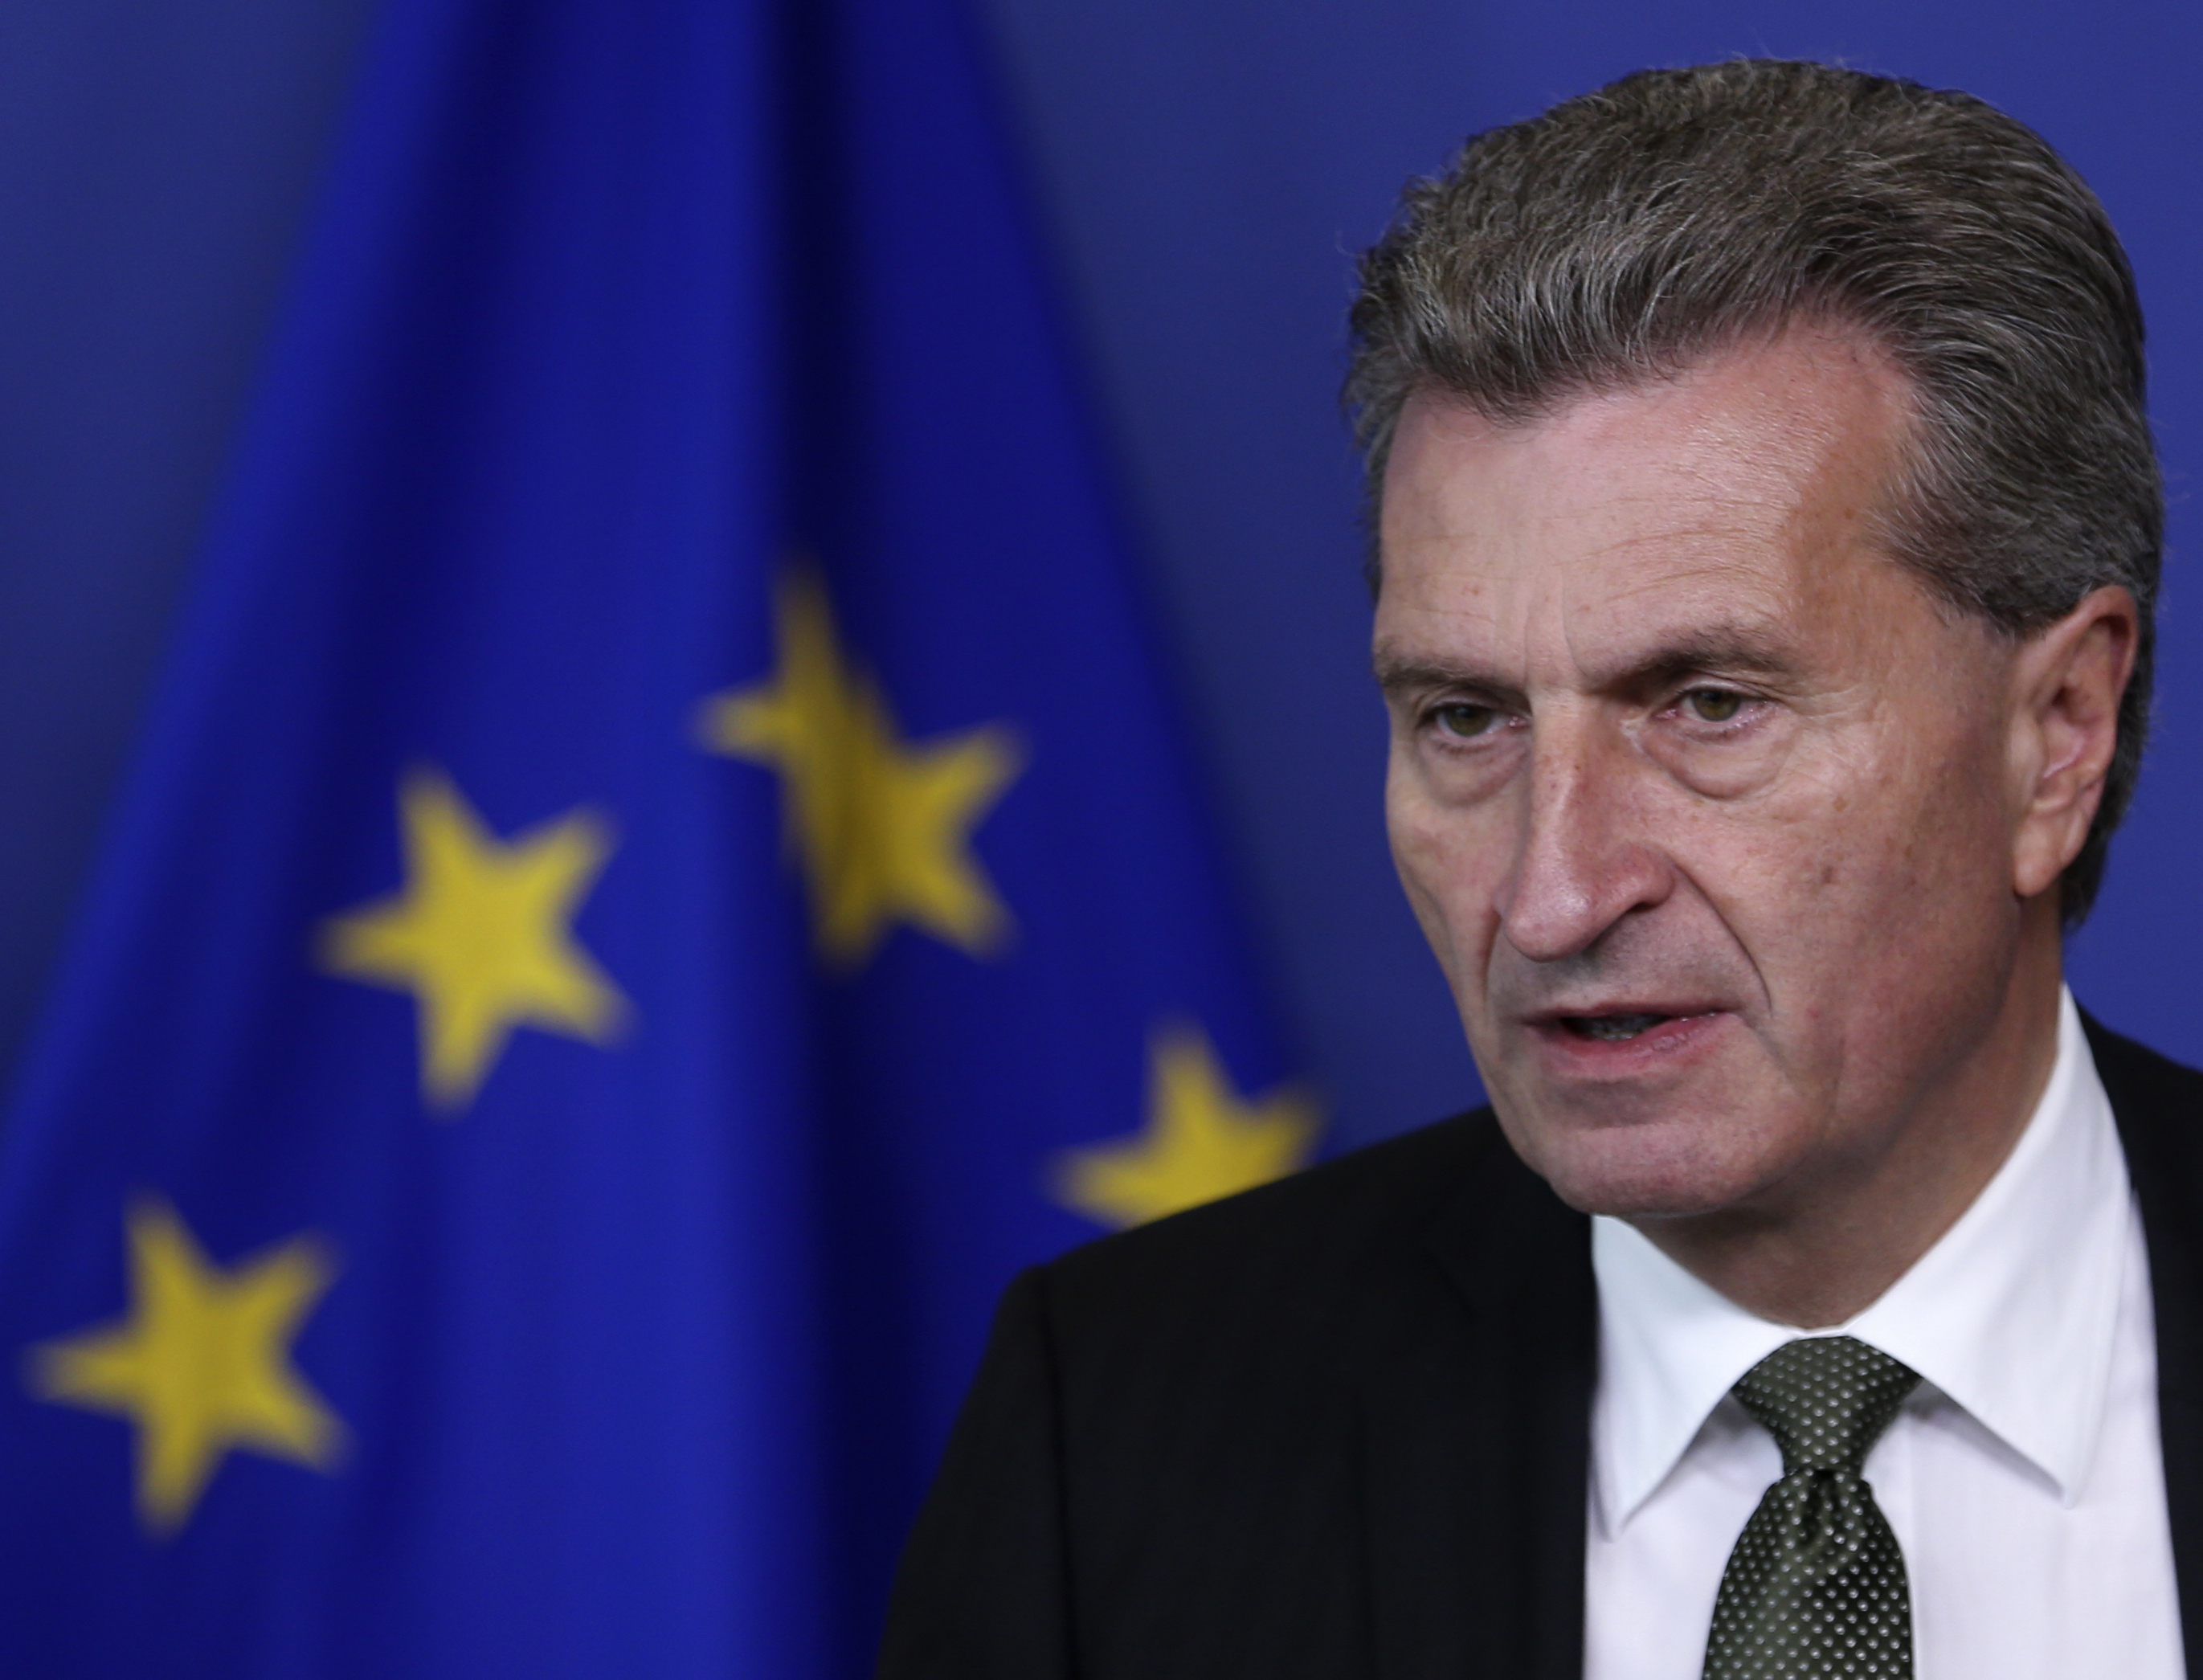 http://opinione.it/media/3877090/2-oettinger.jpg